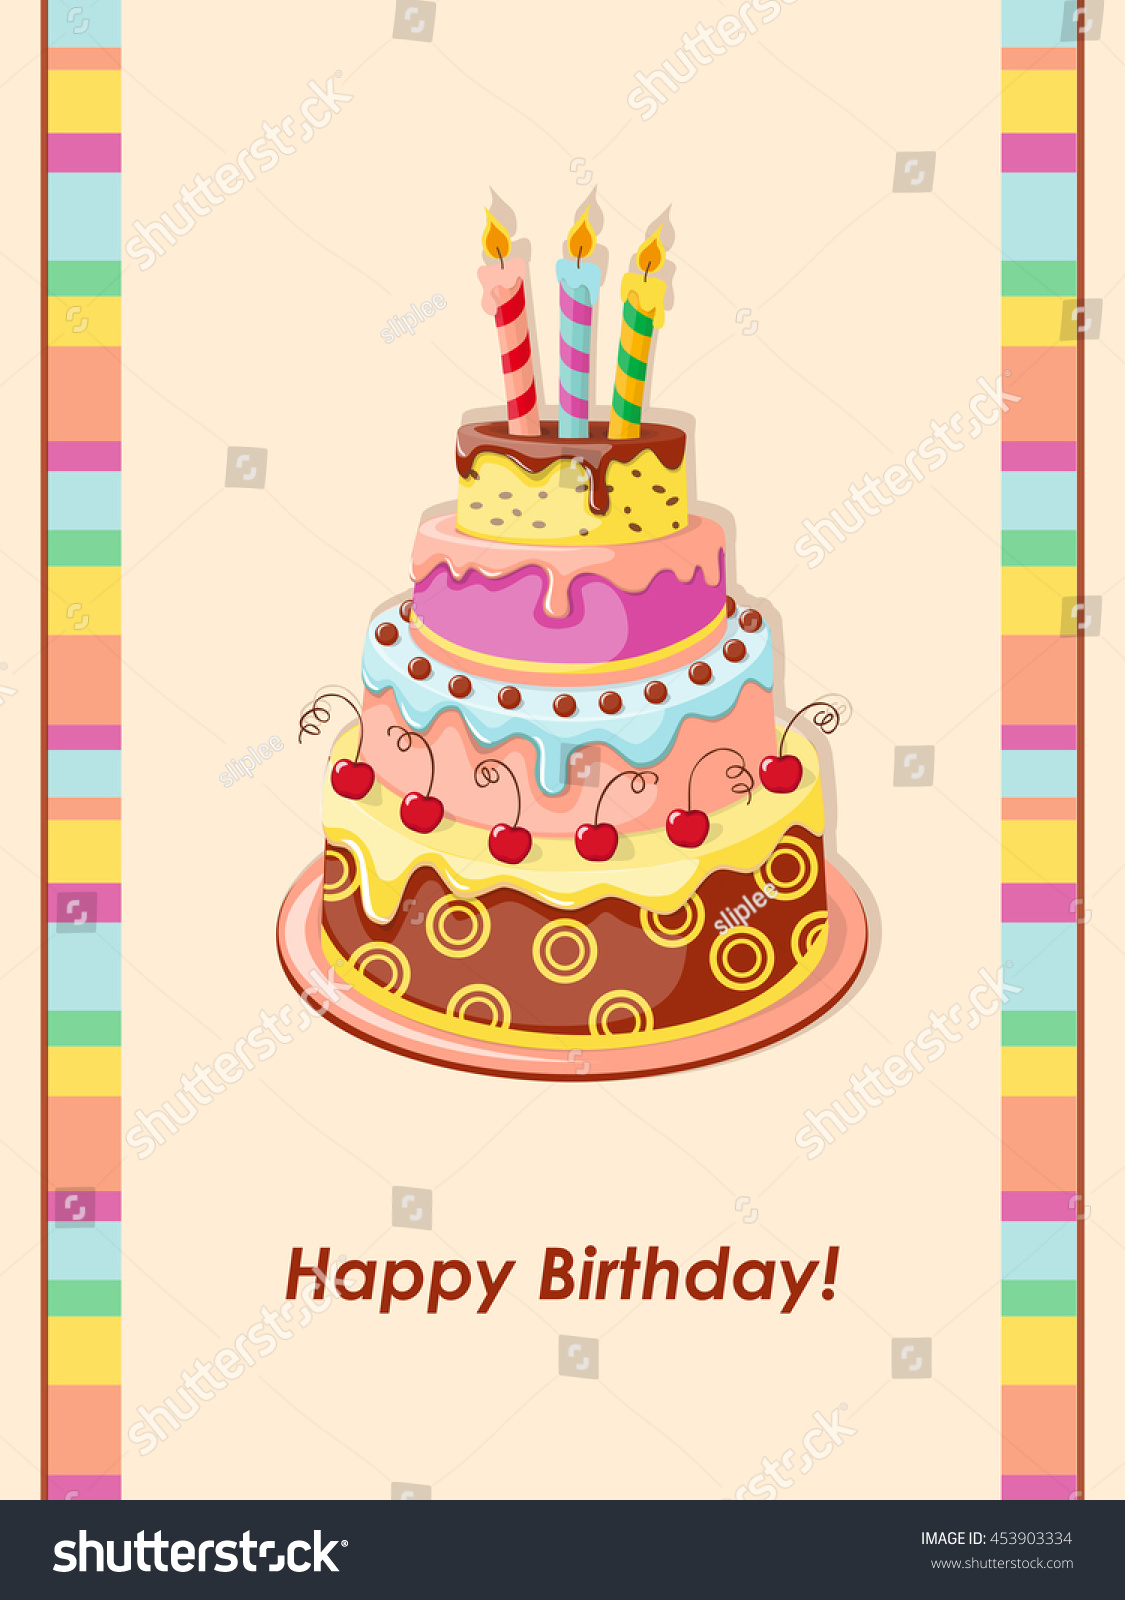 Festive Colorful Birthday Card With Cake Tier Candles And Cherry On